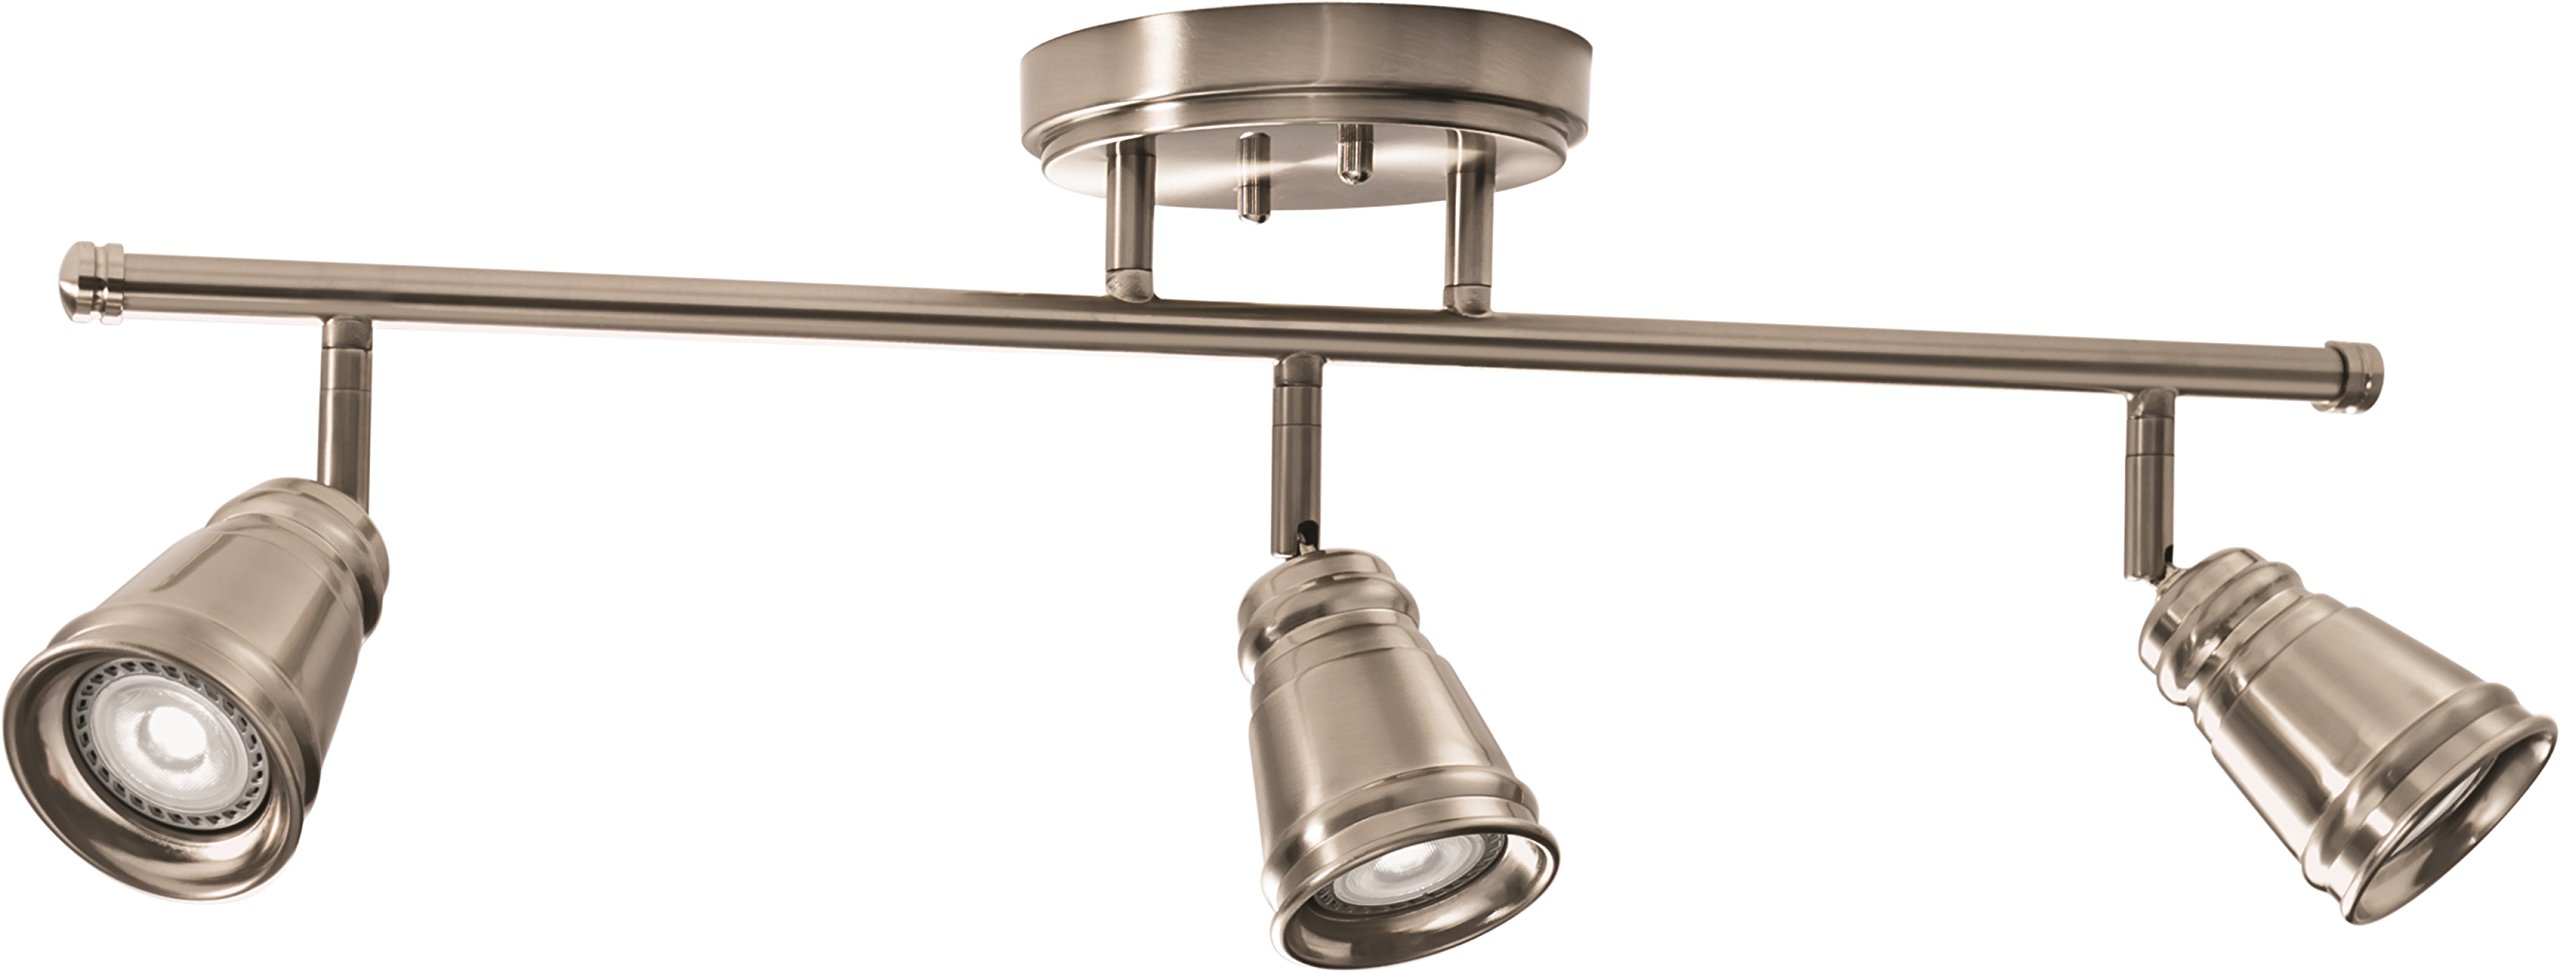 Lithonia Lighting LTFPMILL MR16GU10 LED 27K 3H BN M4 Led 3 Head Peppermill Fixed Track Kit, 21W, Brushed Nickel